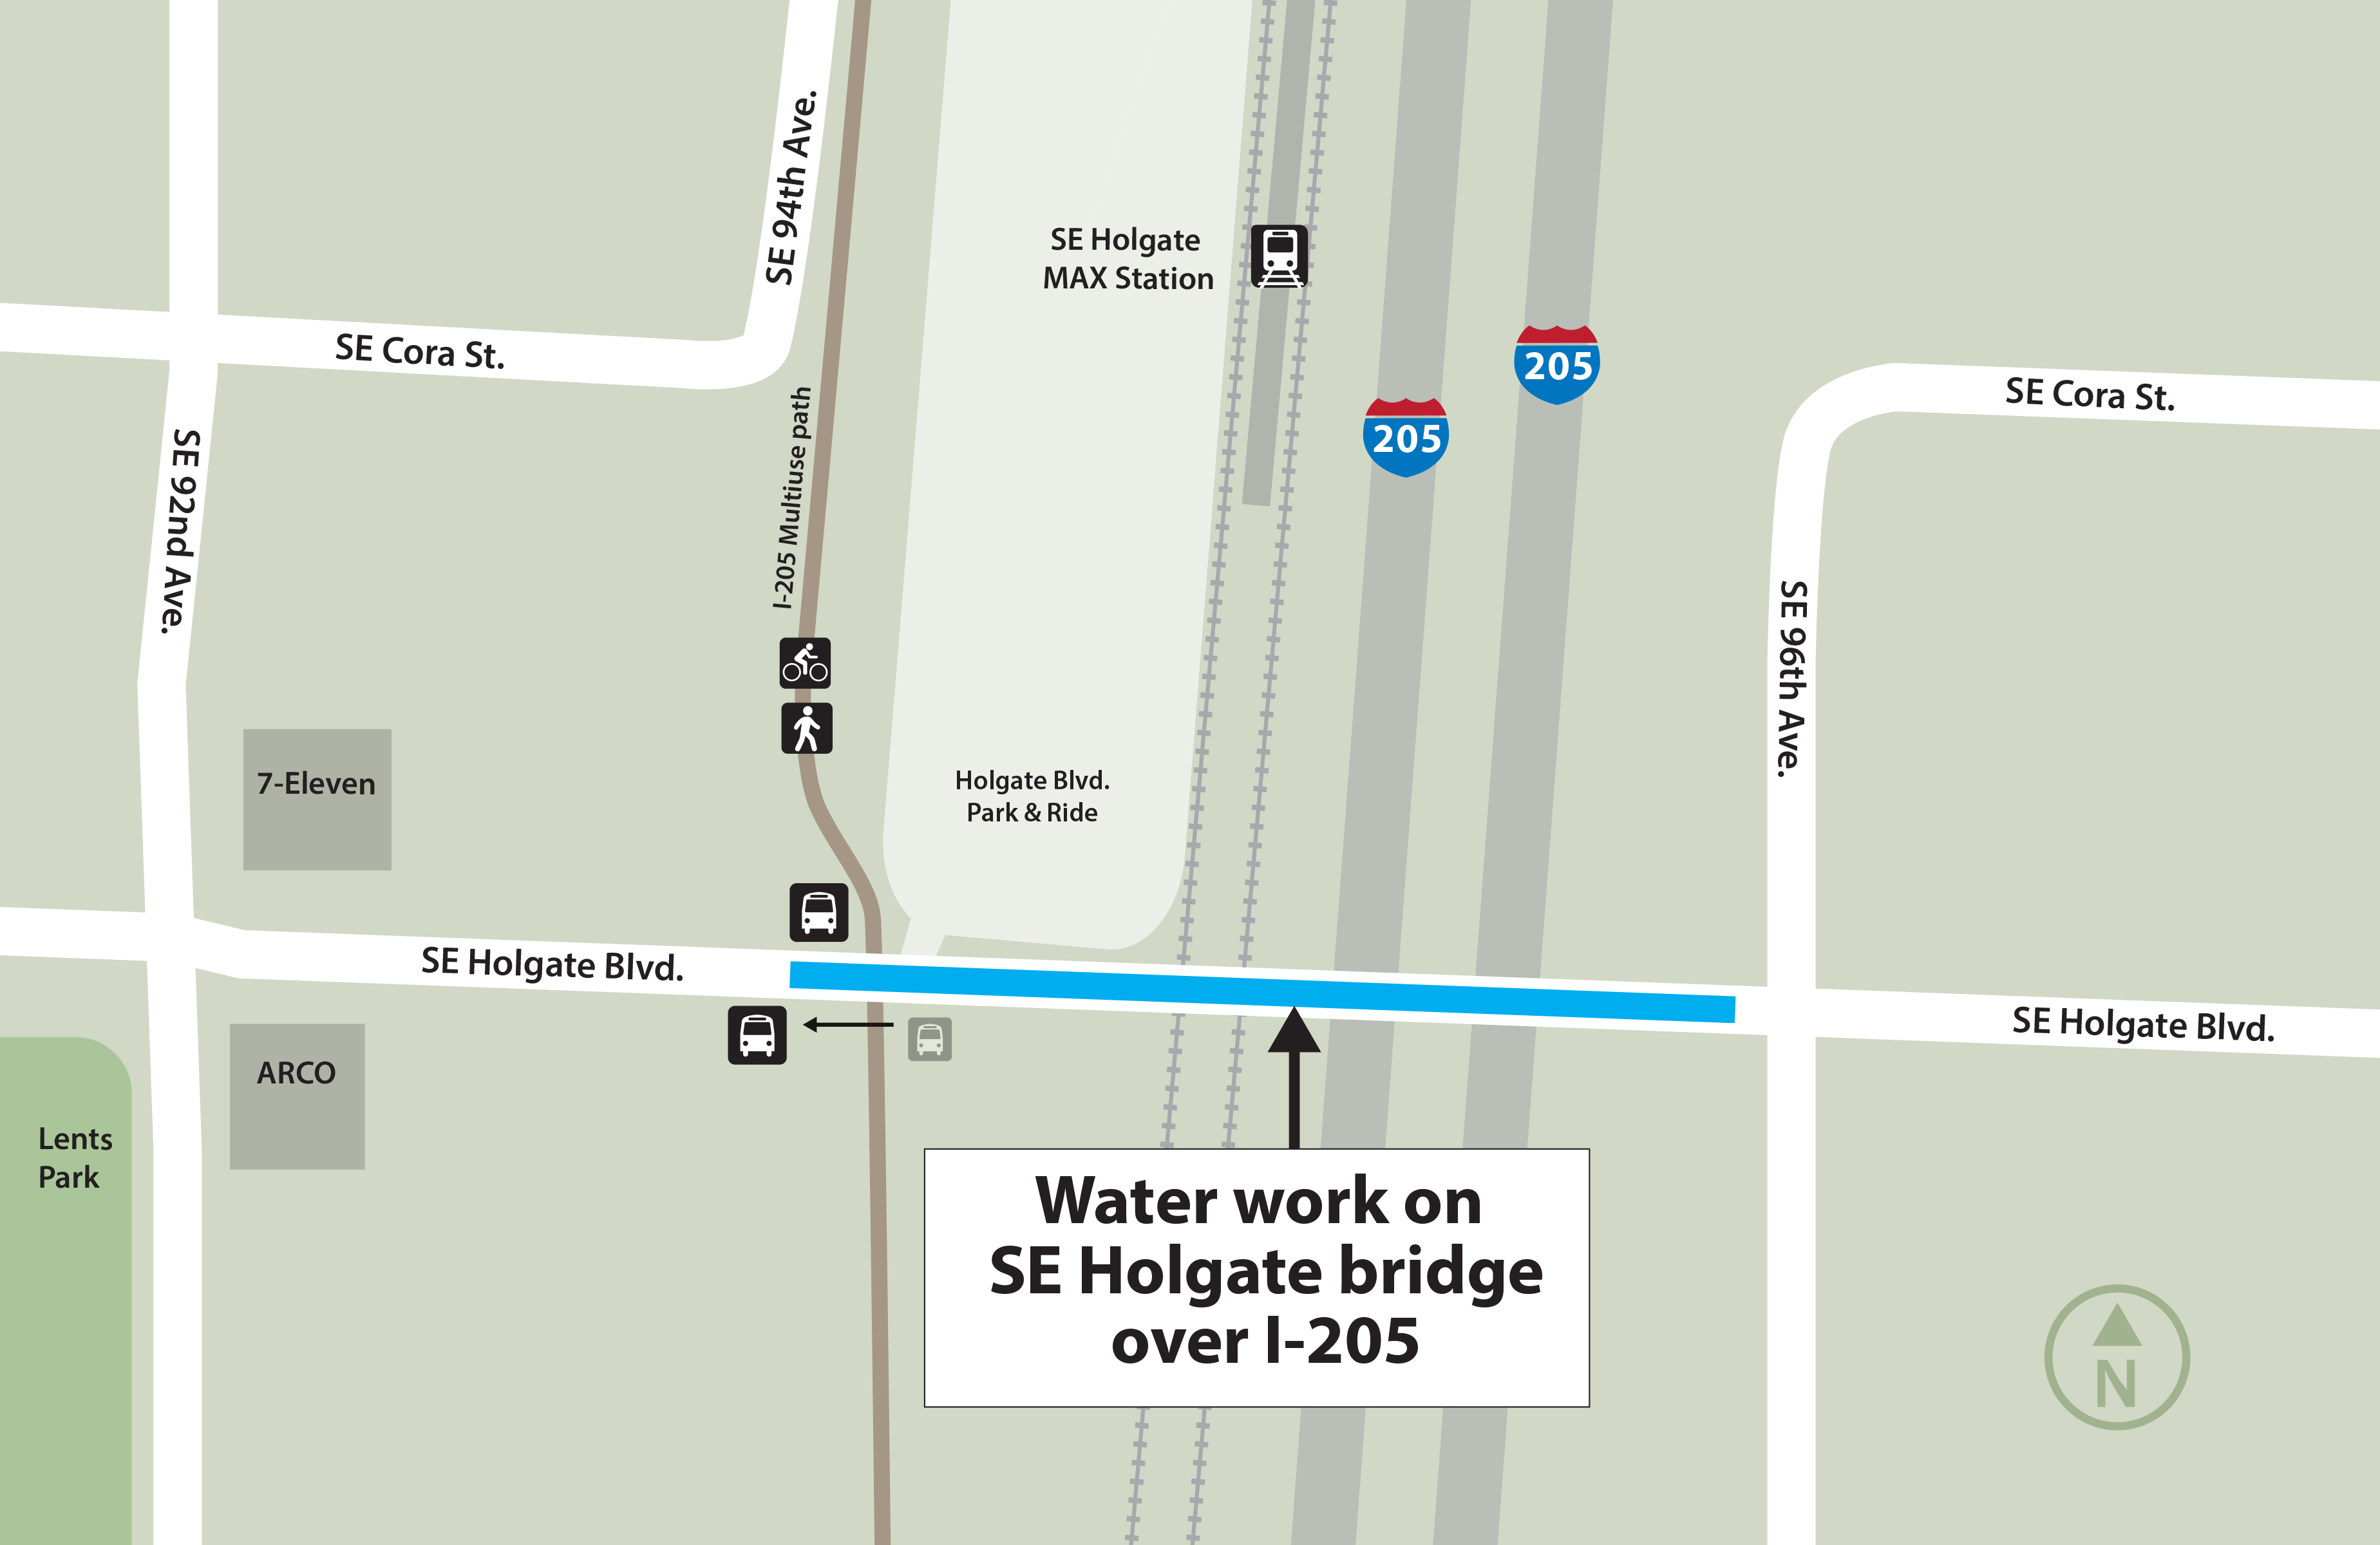 A map shows the location of the work zone